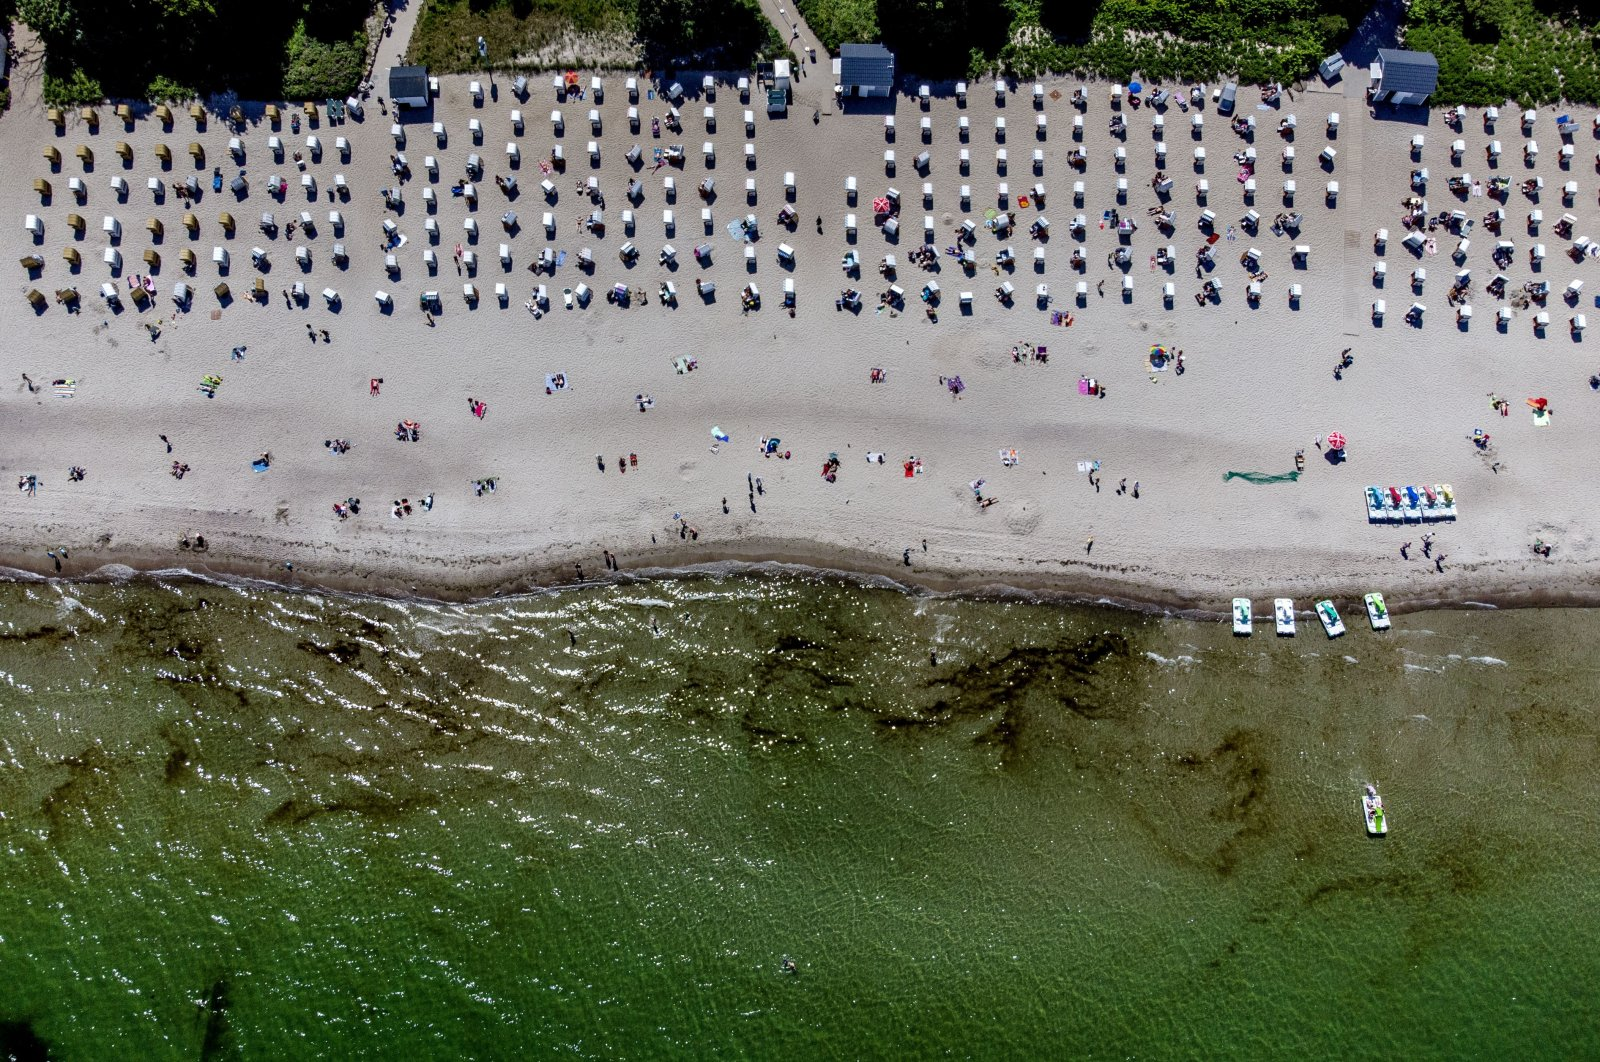 Tourists visit a beach on the Baltic Sea in Timmendorfer Strand, northern Germany, June 8, 2021. (AP Photo)